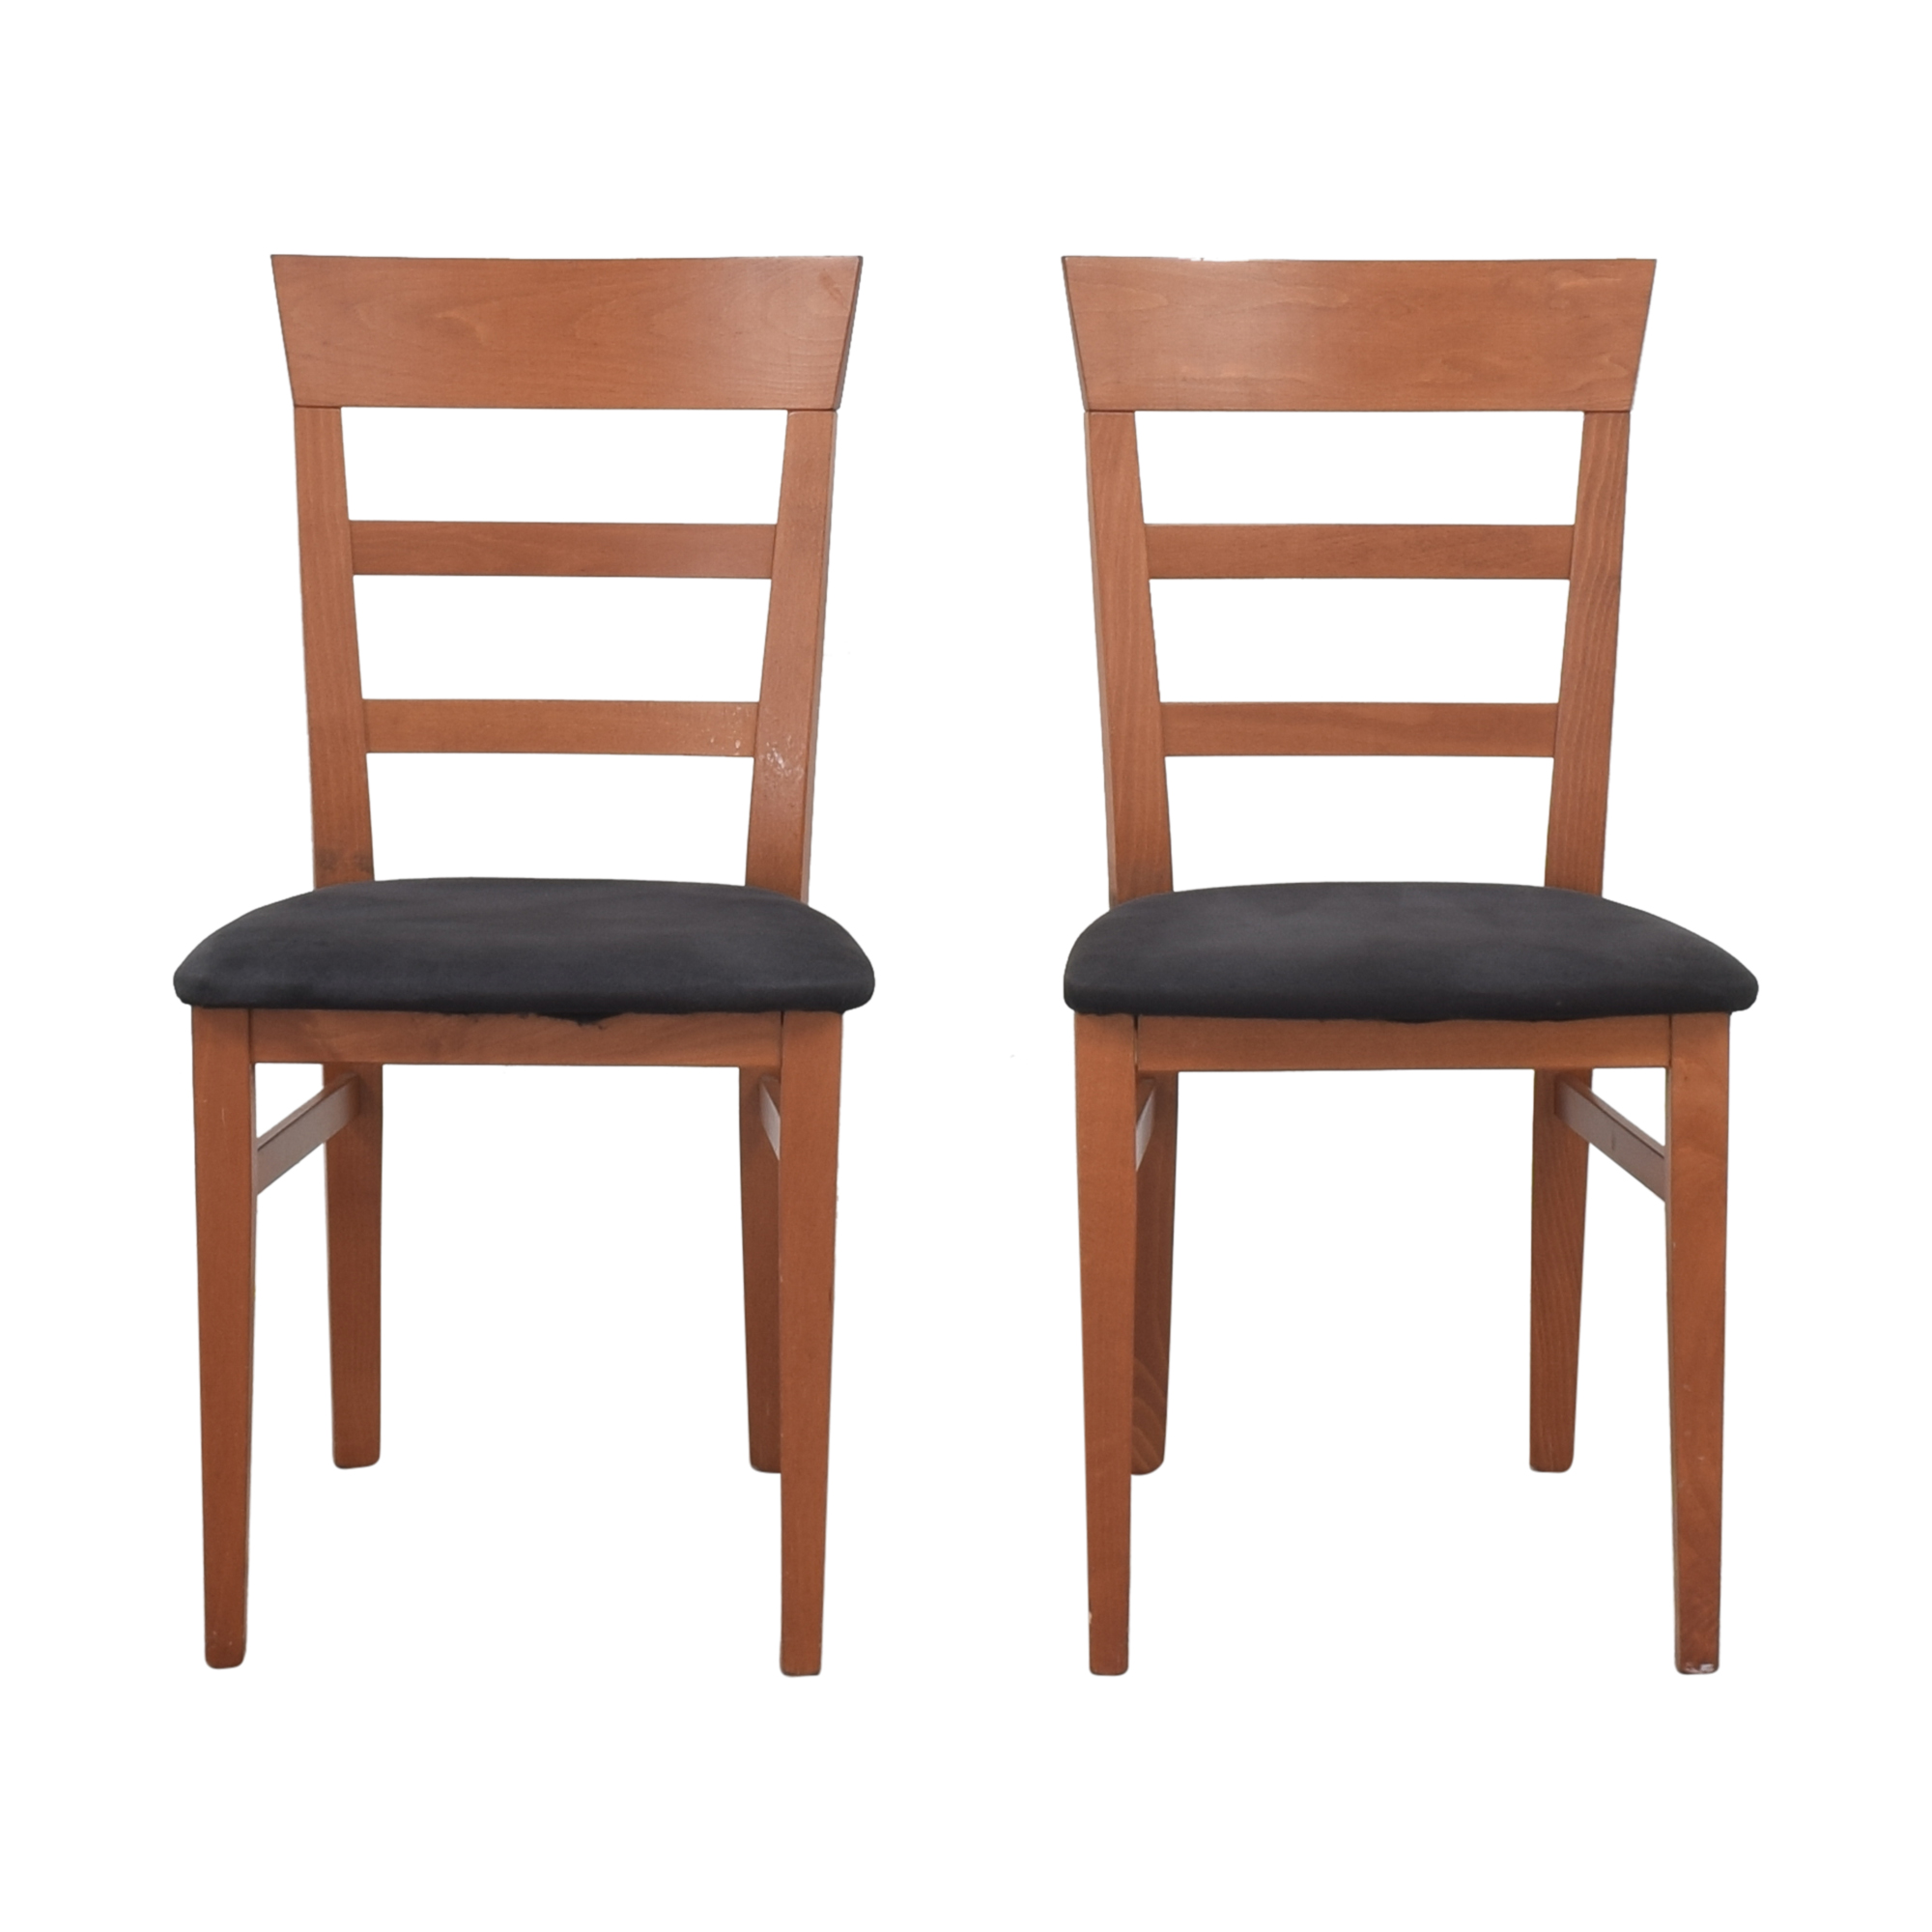 Linon Home Decor Linon Home Decor Slat Back Dining Chairs discount